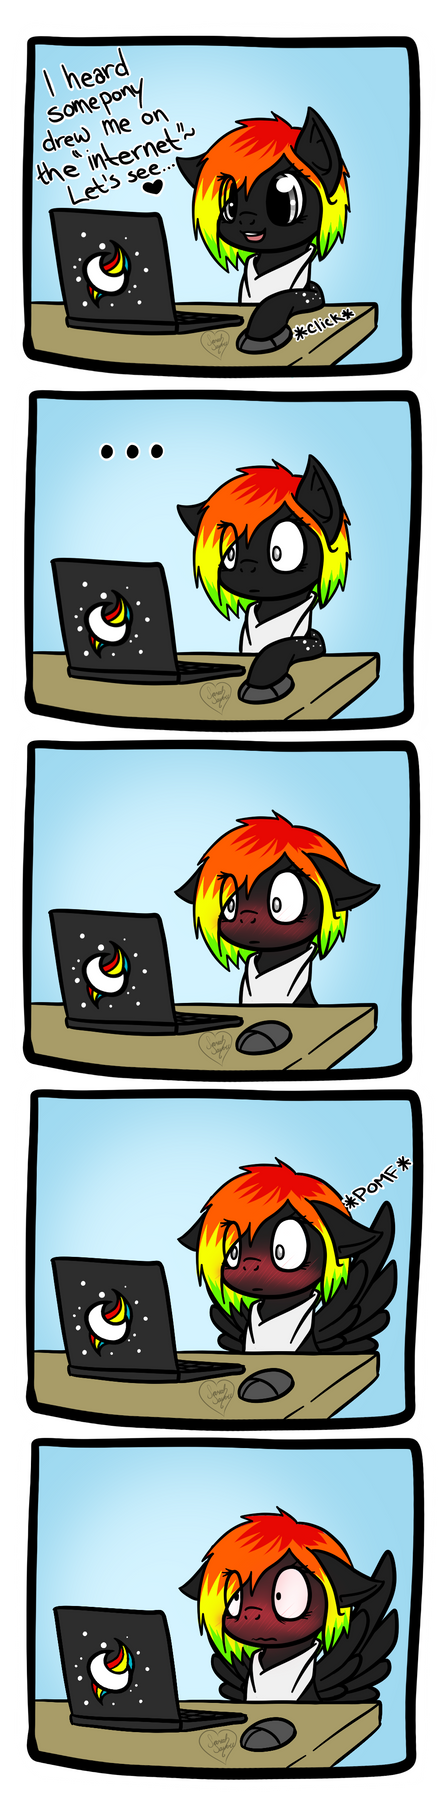 Spectral's Reaction to Rule 34 by DragonGirl983